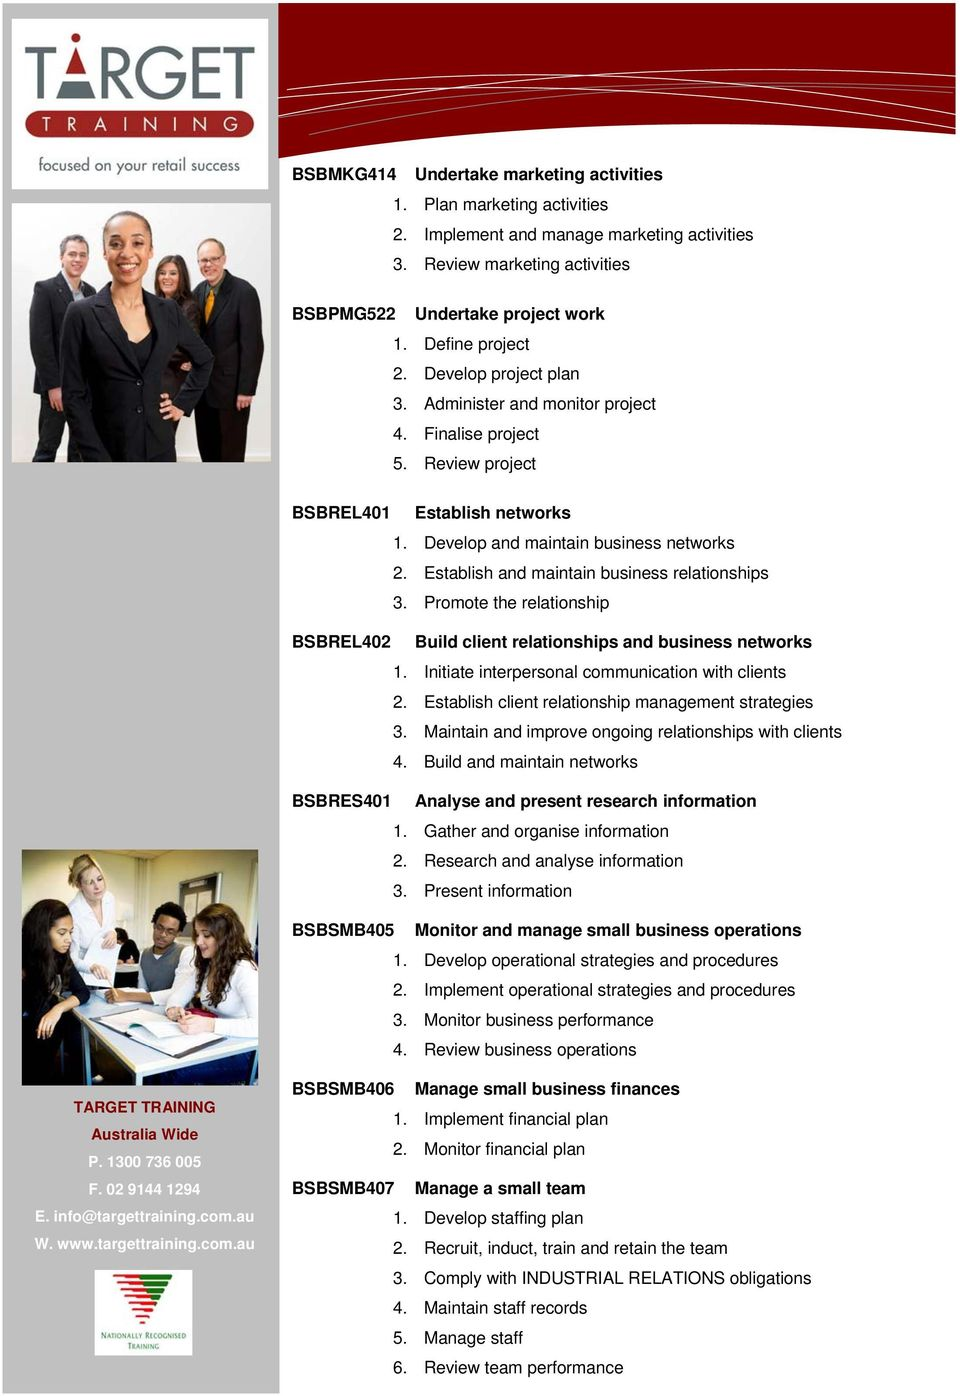 Establish and maintain business relationships 3. Promote the relationship BSBREL402 Build client relationships and business networks 1. Initiate interpersonal communication with clients 2.